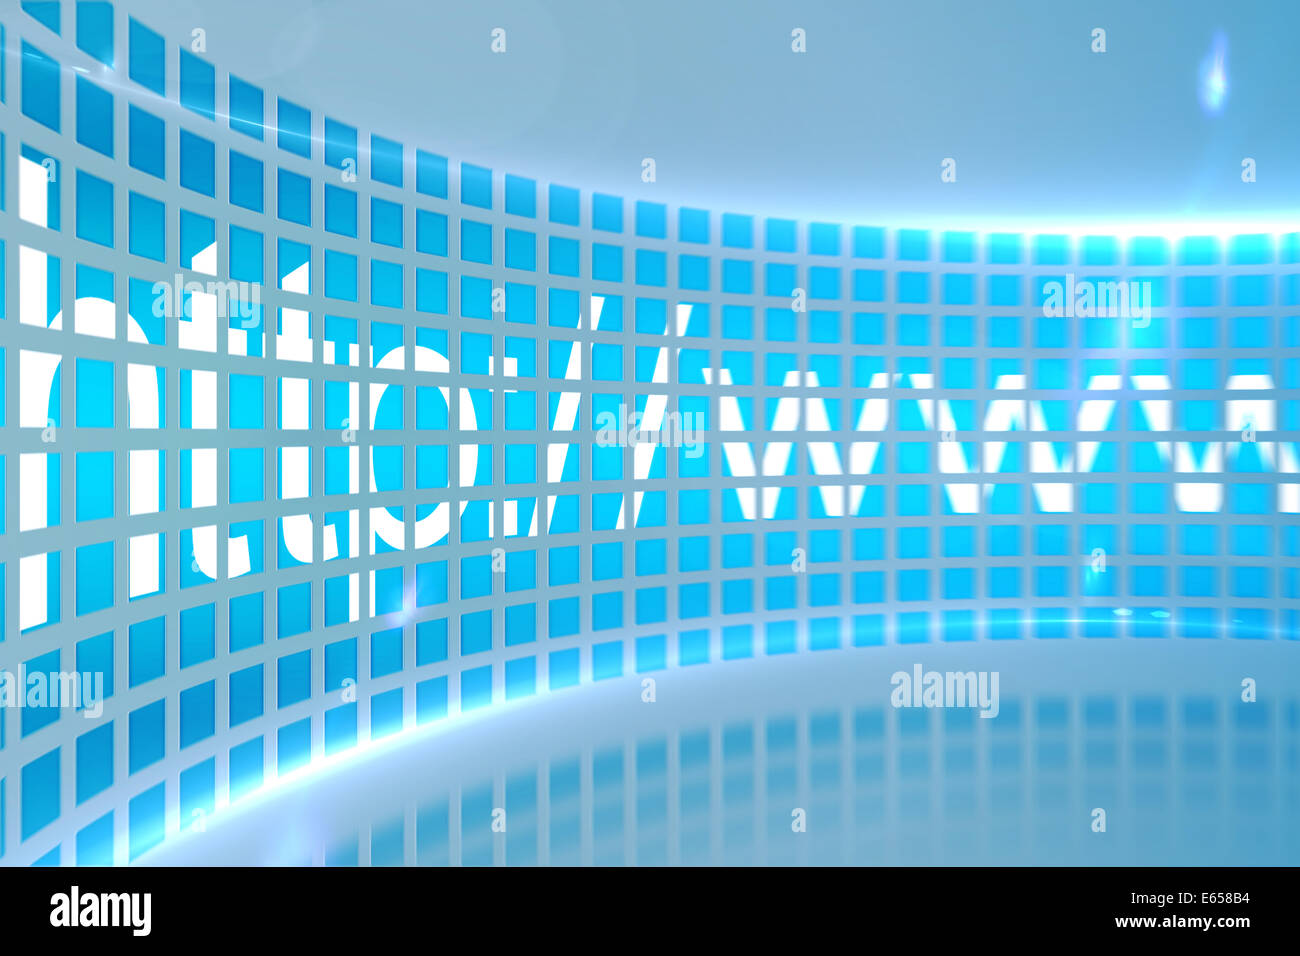 Http address on digital screen - Stock Image